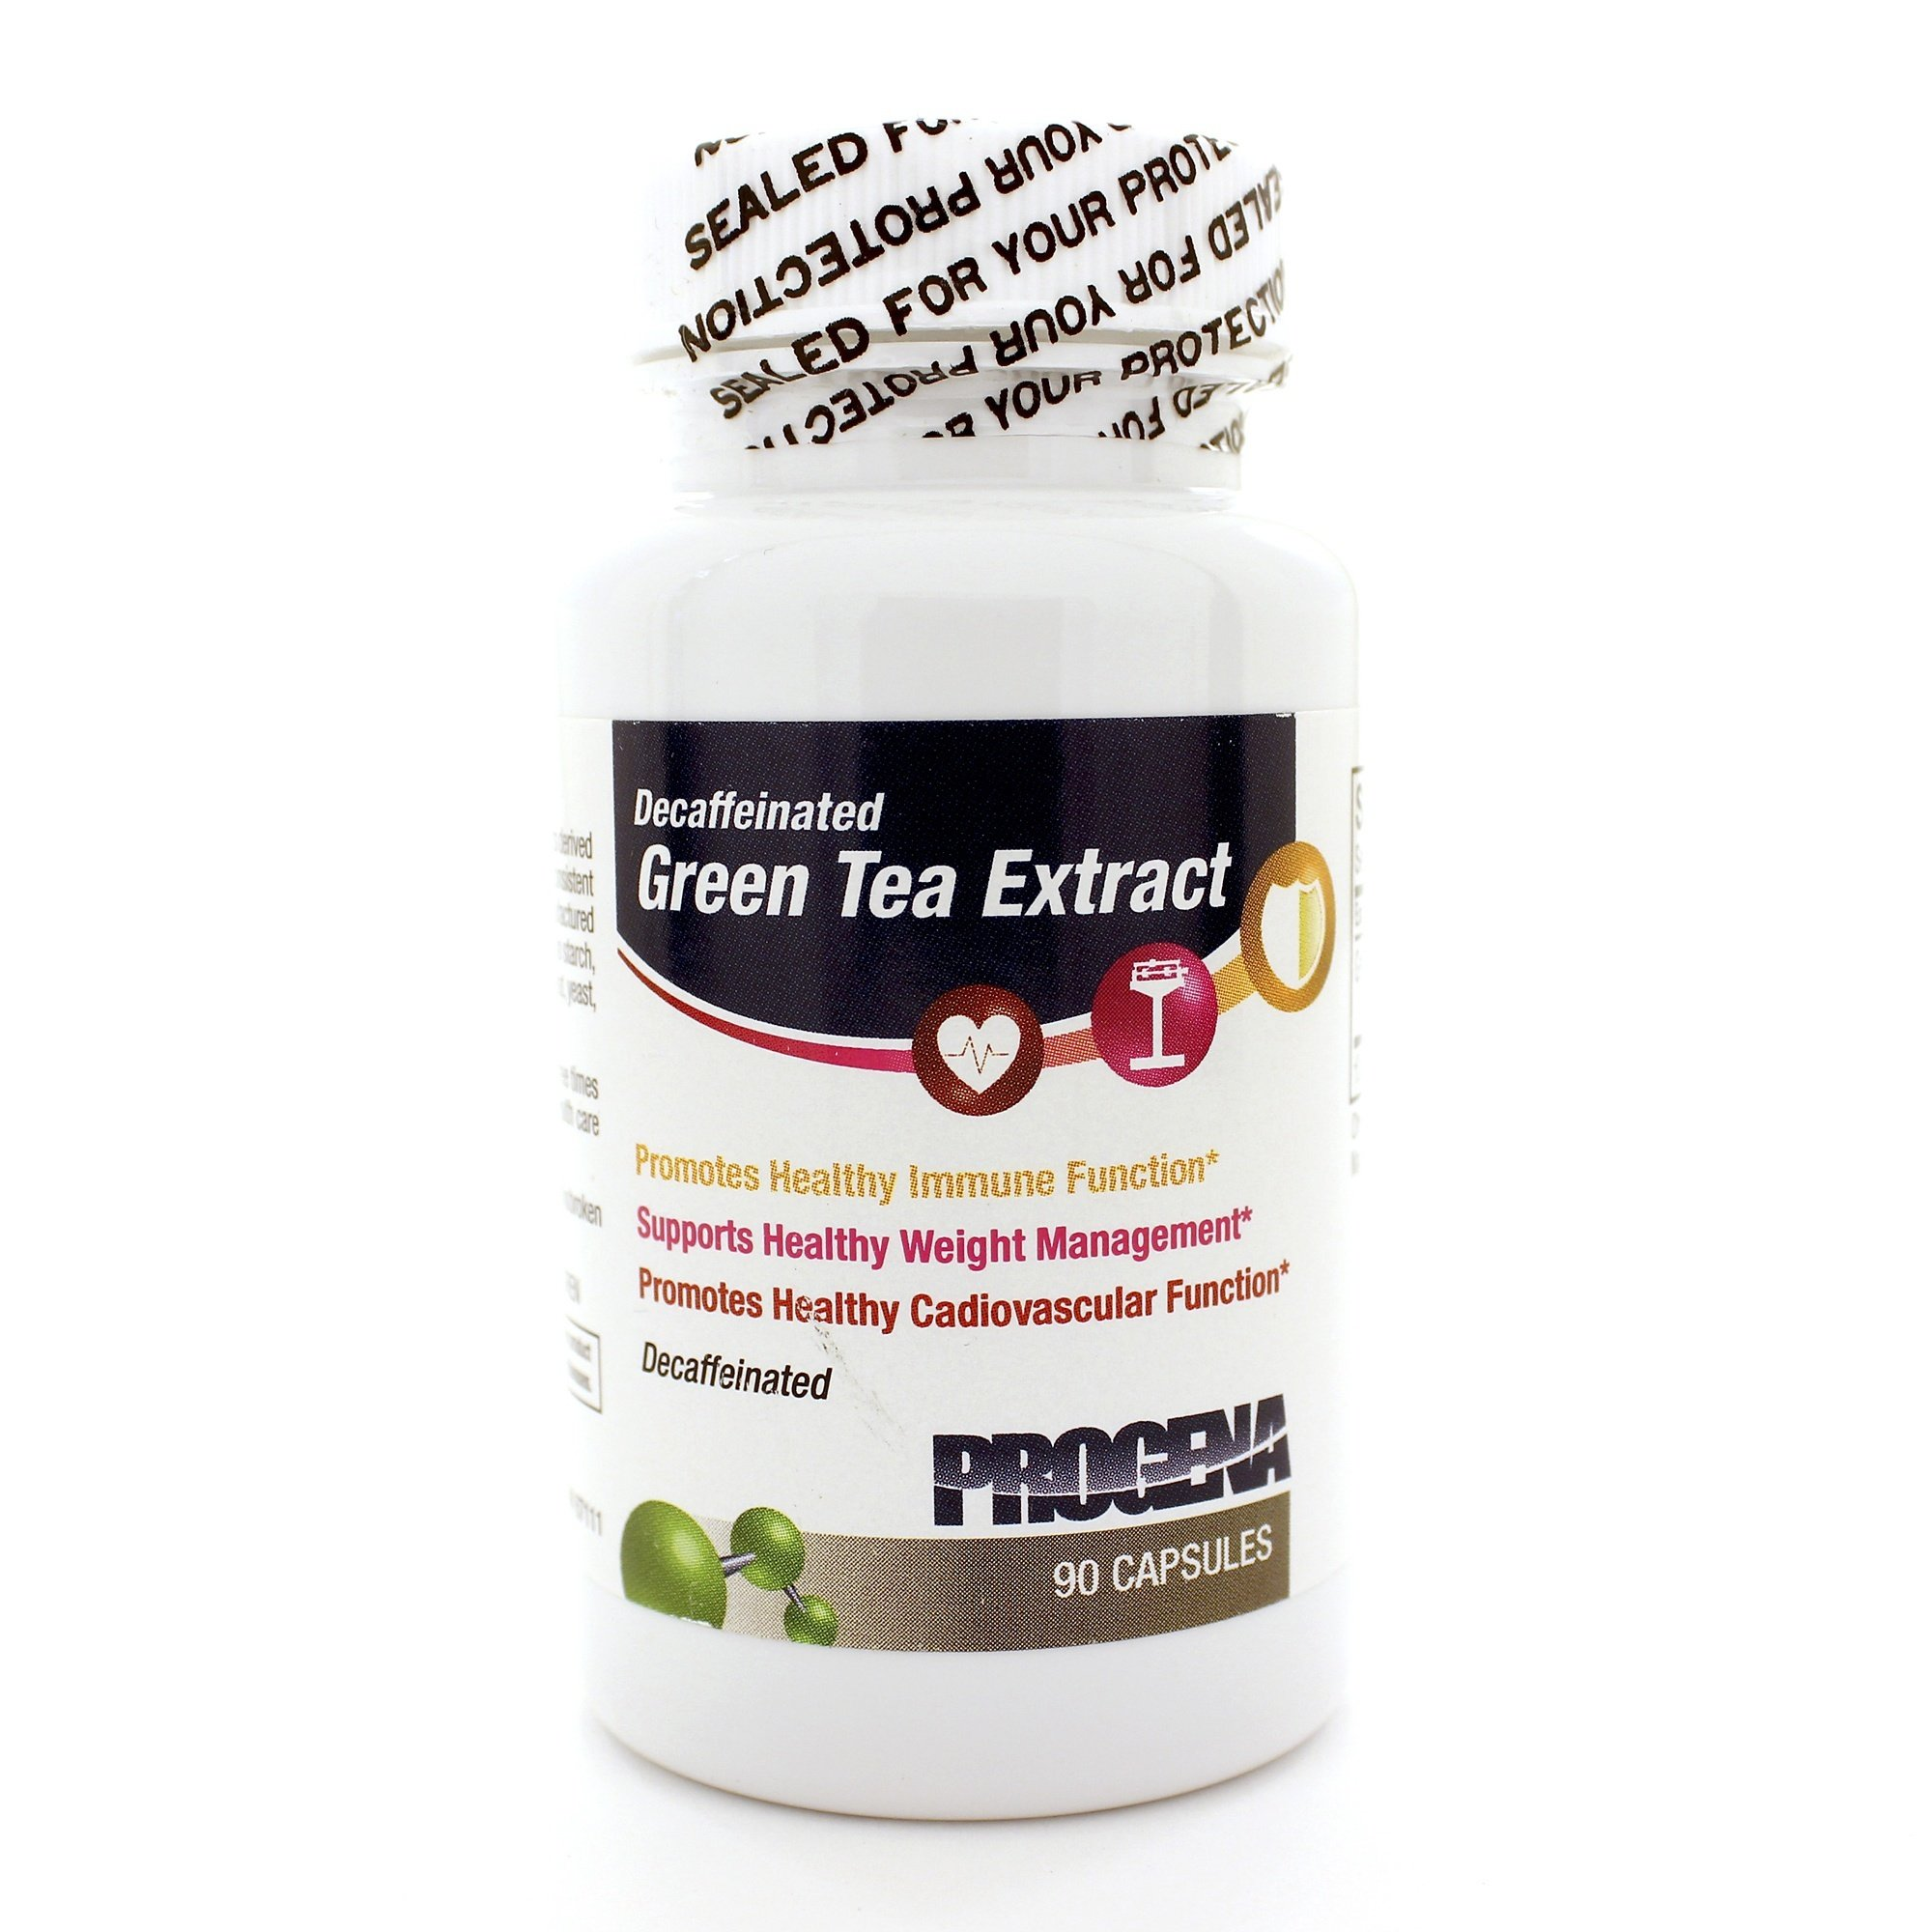 Green Tea Extract/Decaf 500mg 90 Capsules (Pack of 2)